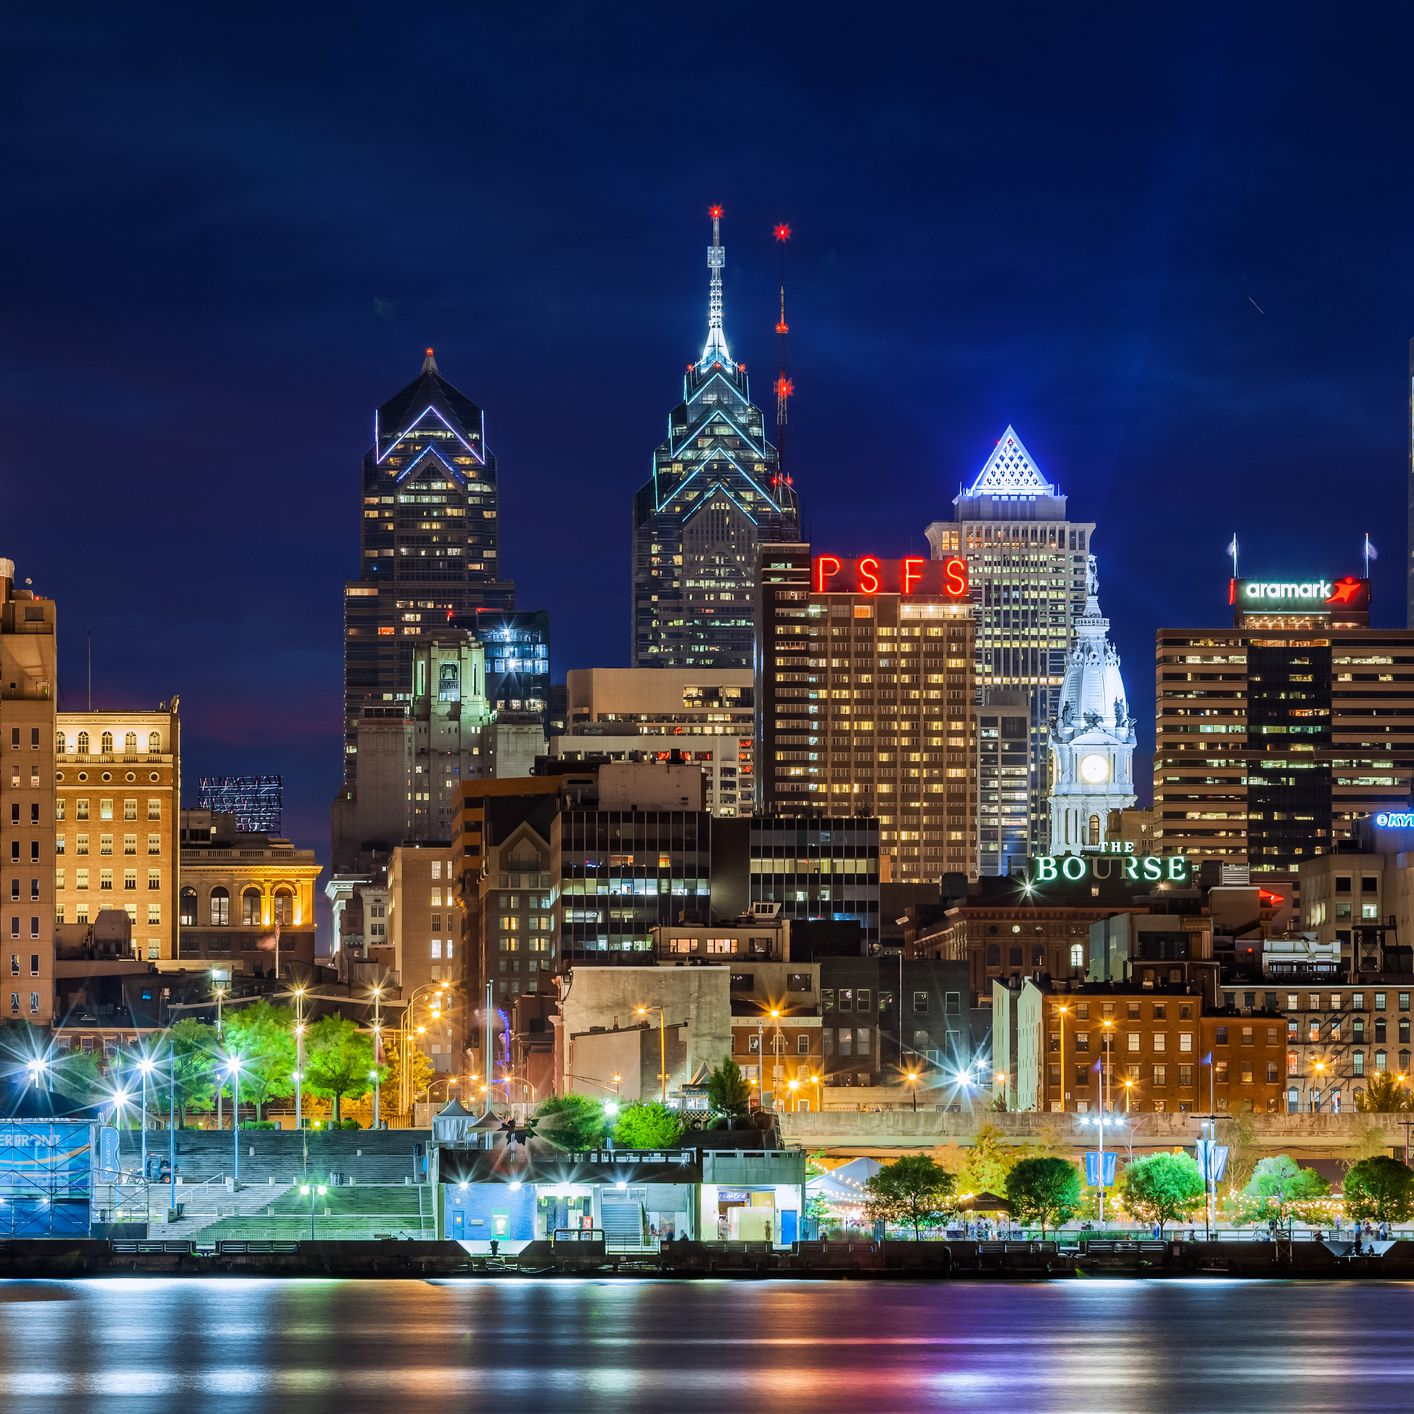 Nightlife in Philadelphia: Best Bars, Clubs, & More